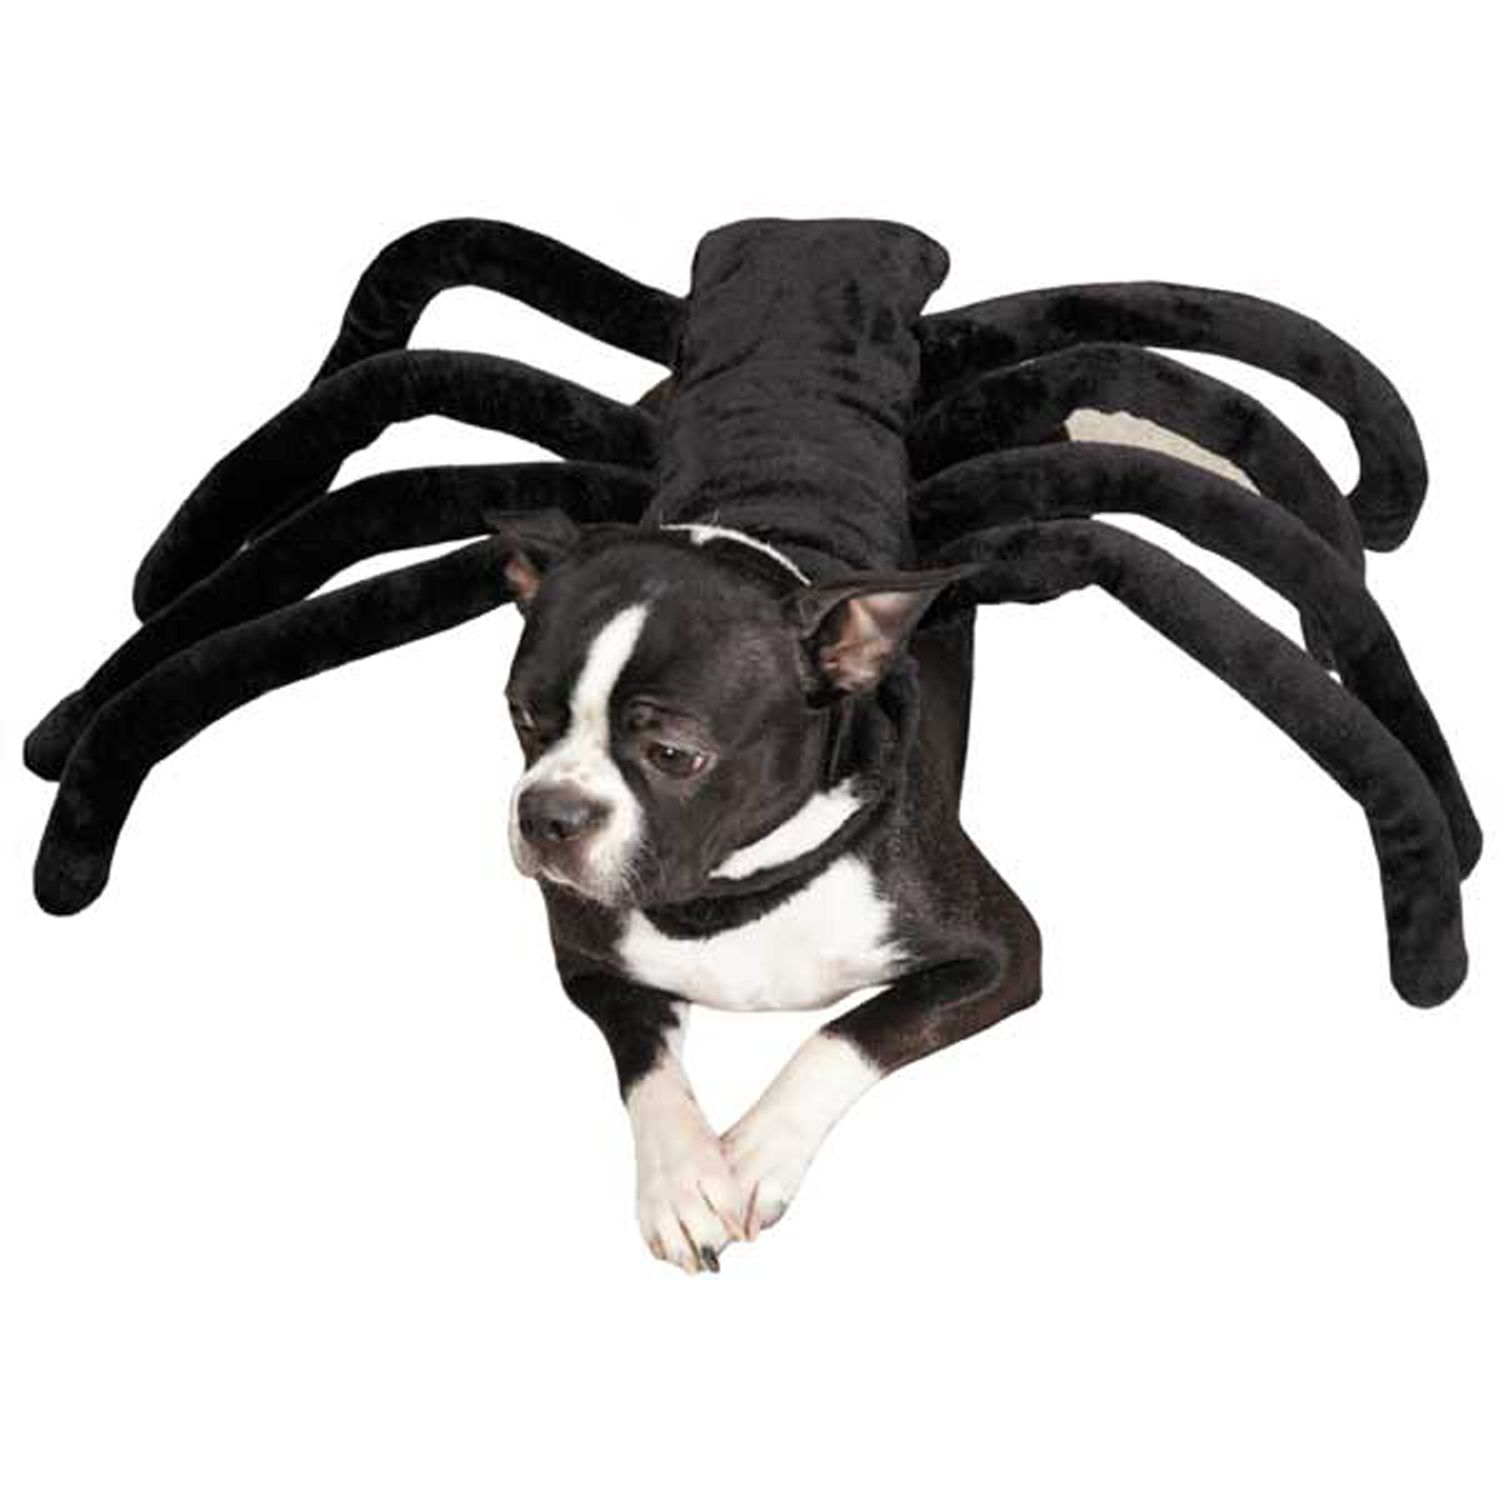 Dog  sc 1 st  Pinterest & Grr-antula Dog Halloween Costume at BaxterBoo | For the Love of ...